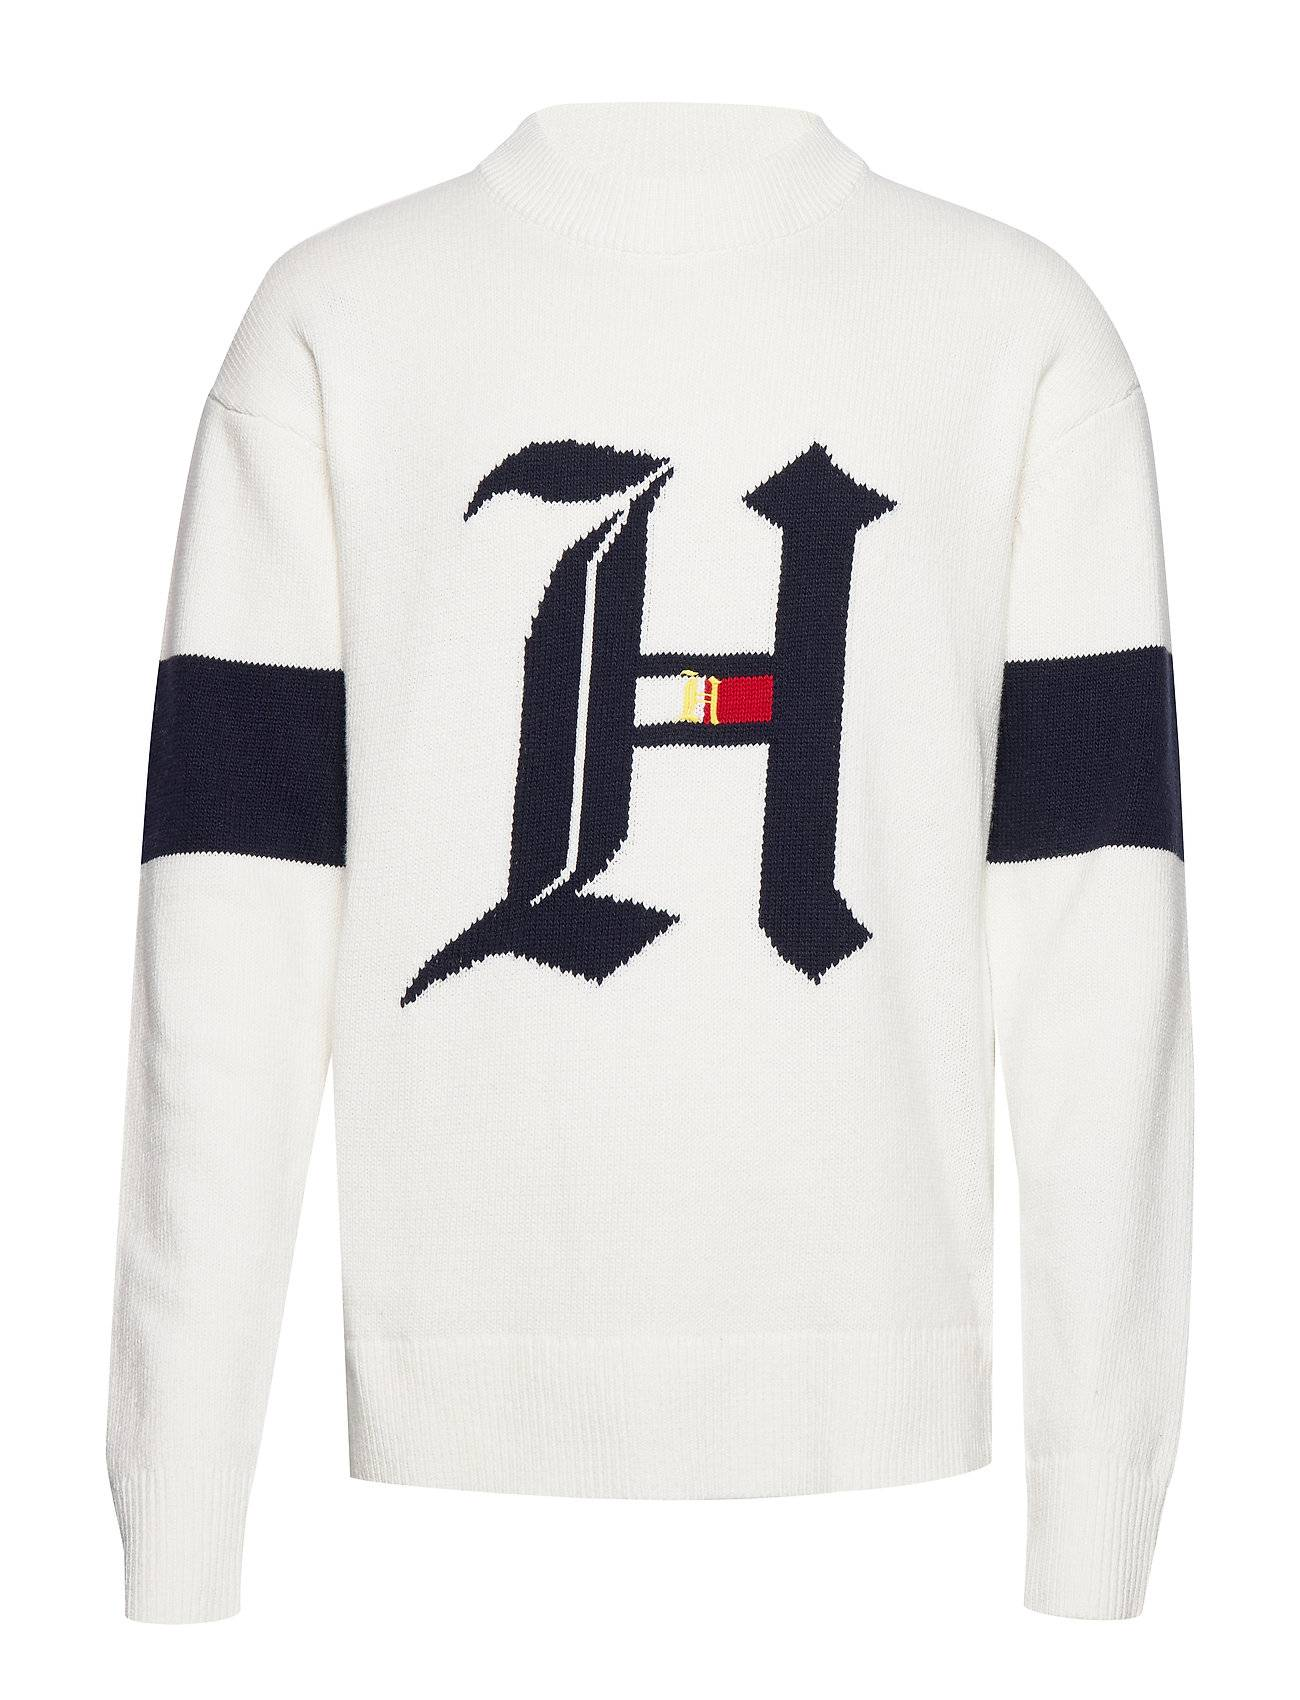 Tommy Hilfiger Lh Over D Graphic Sweater Svetari Collegepaita Valkoinen Tommy Hilfiger